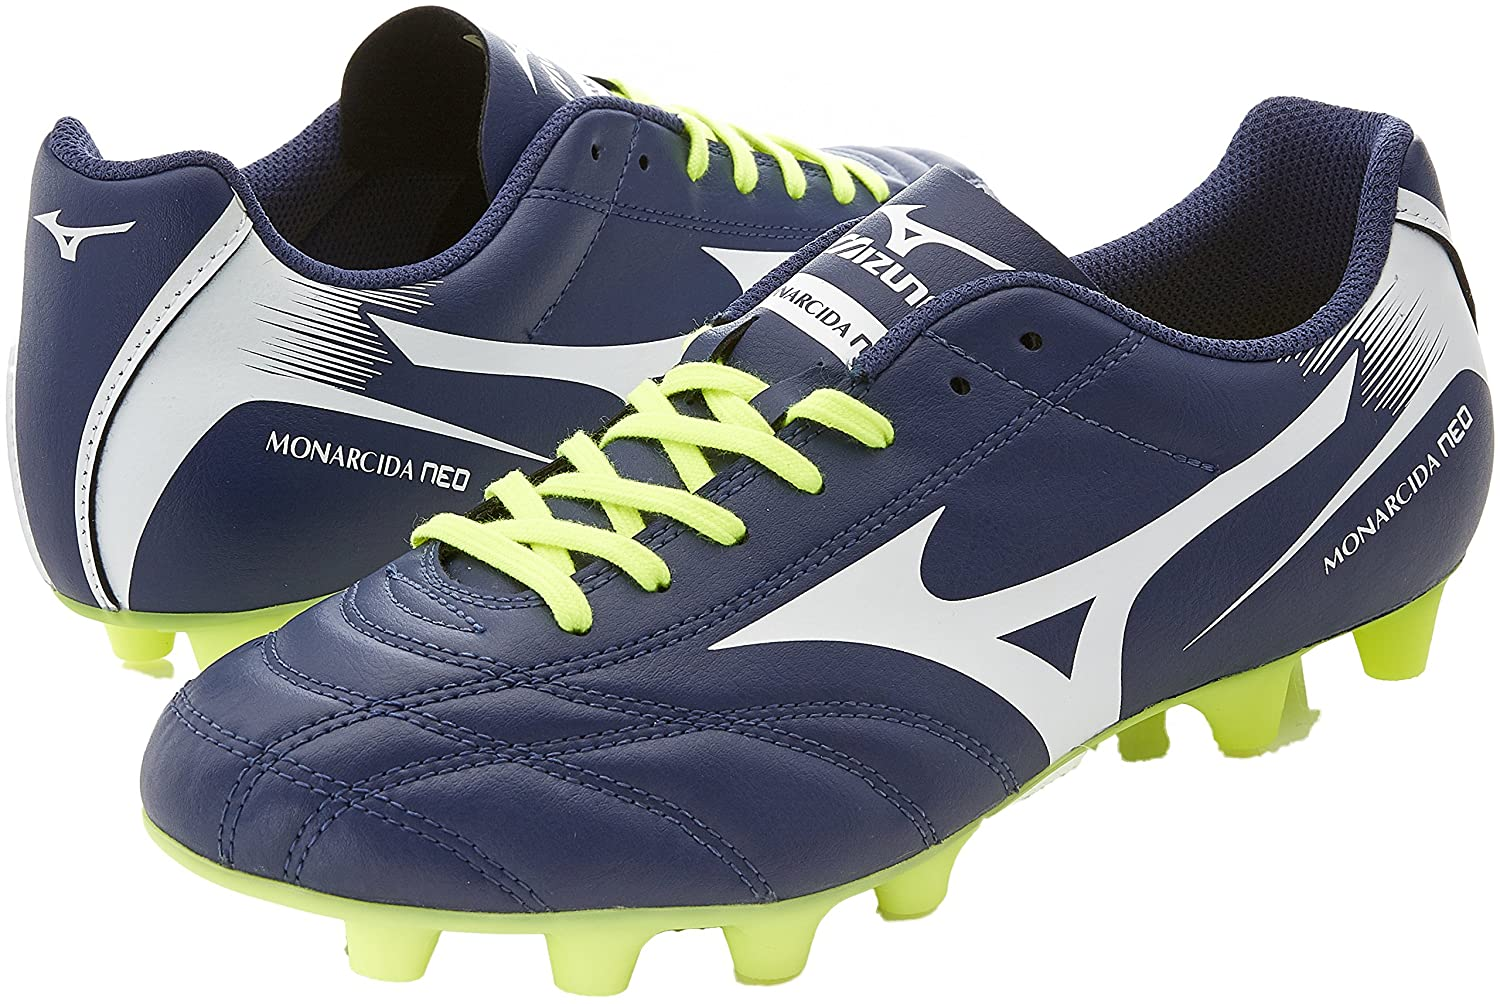 check out 5abdc 32e3f Mizuno Monarcida Neo MD, Chaussures de Football Homme  Amazon.fr   Chaussures et Sacs